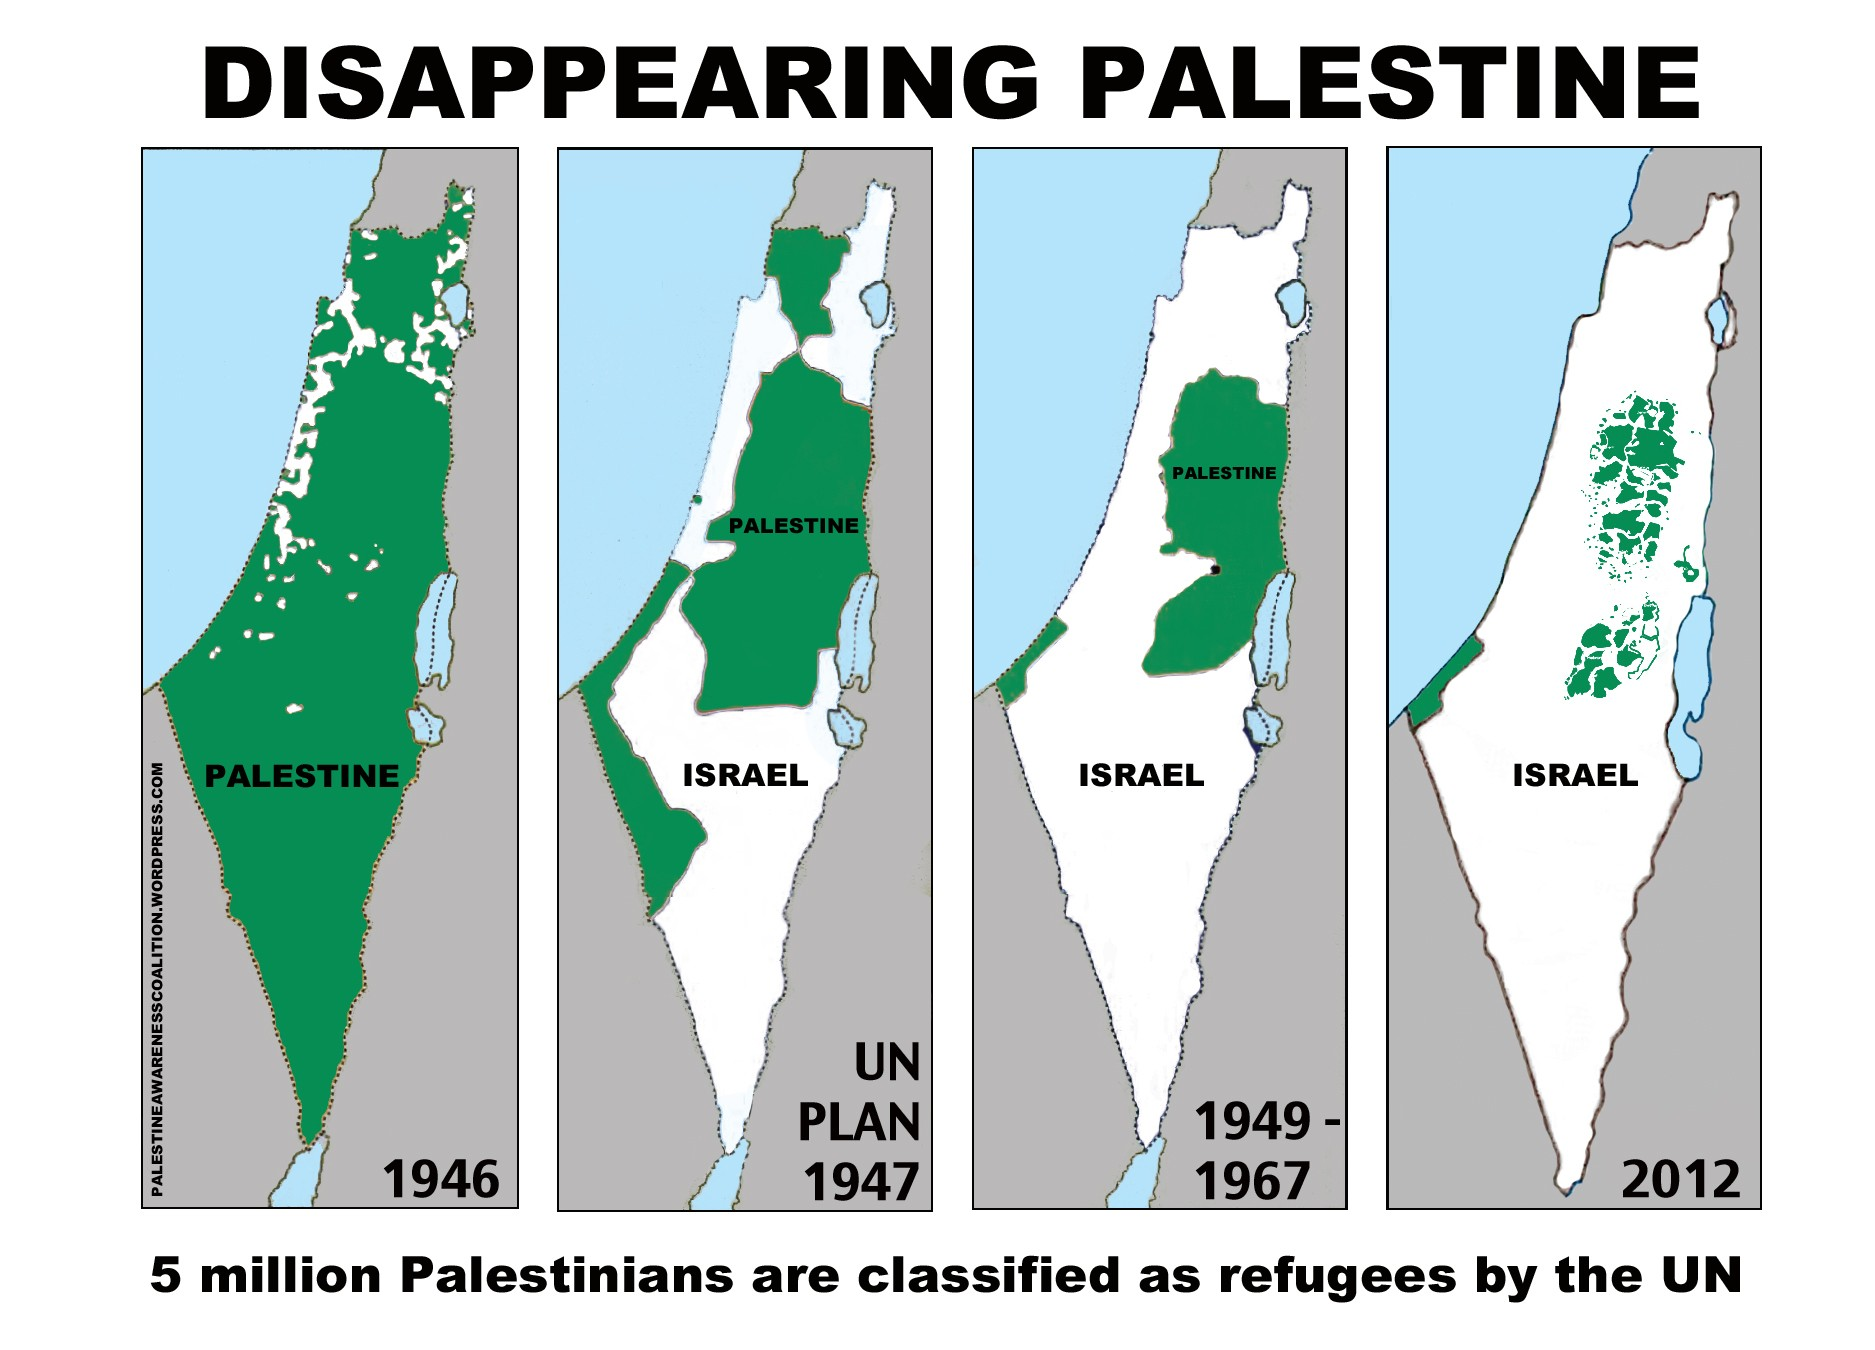 """an analysis of the genesis of conflicts between israel and palestine Culture and conflict resolution: the israeli-palestinian conflict  that movement can be made towards a resolution of the conflict""""  israel/palestine: a ."""